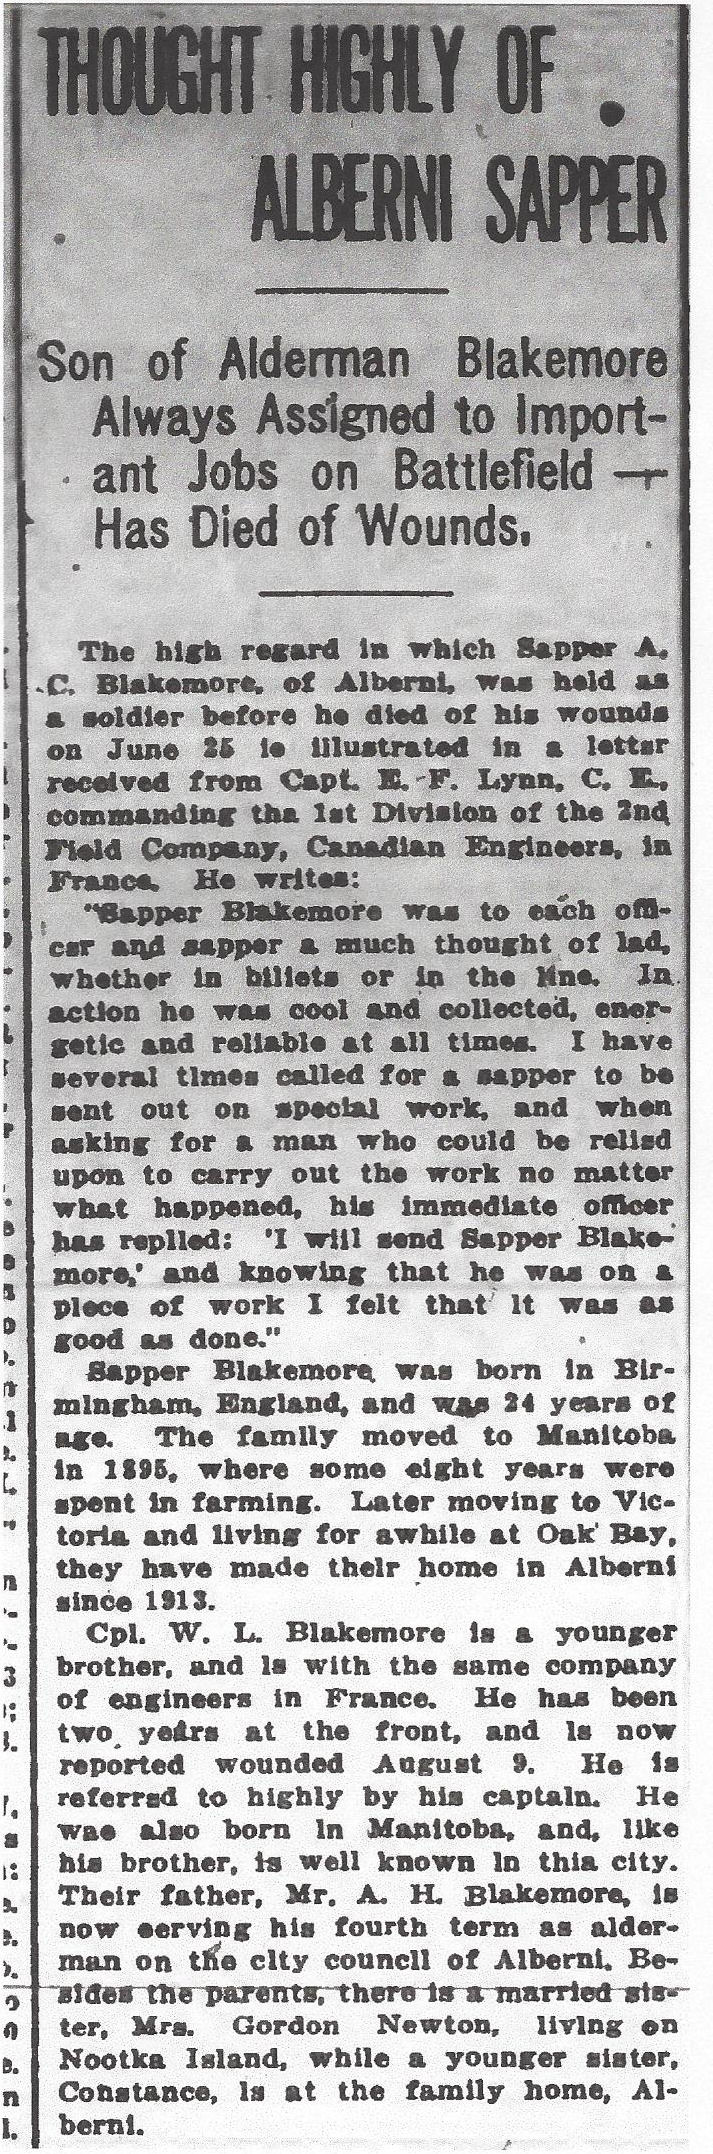 Newspaper clipping– From the Daily Colonist of September 1, 1917. Image taken from web address of http://archive.org/stream/dailycolonist59y228uvic#page/n0/mode/1up